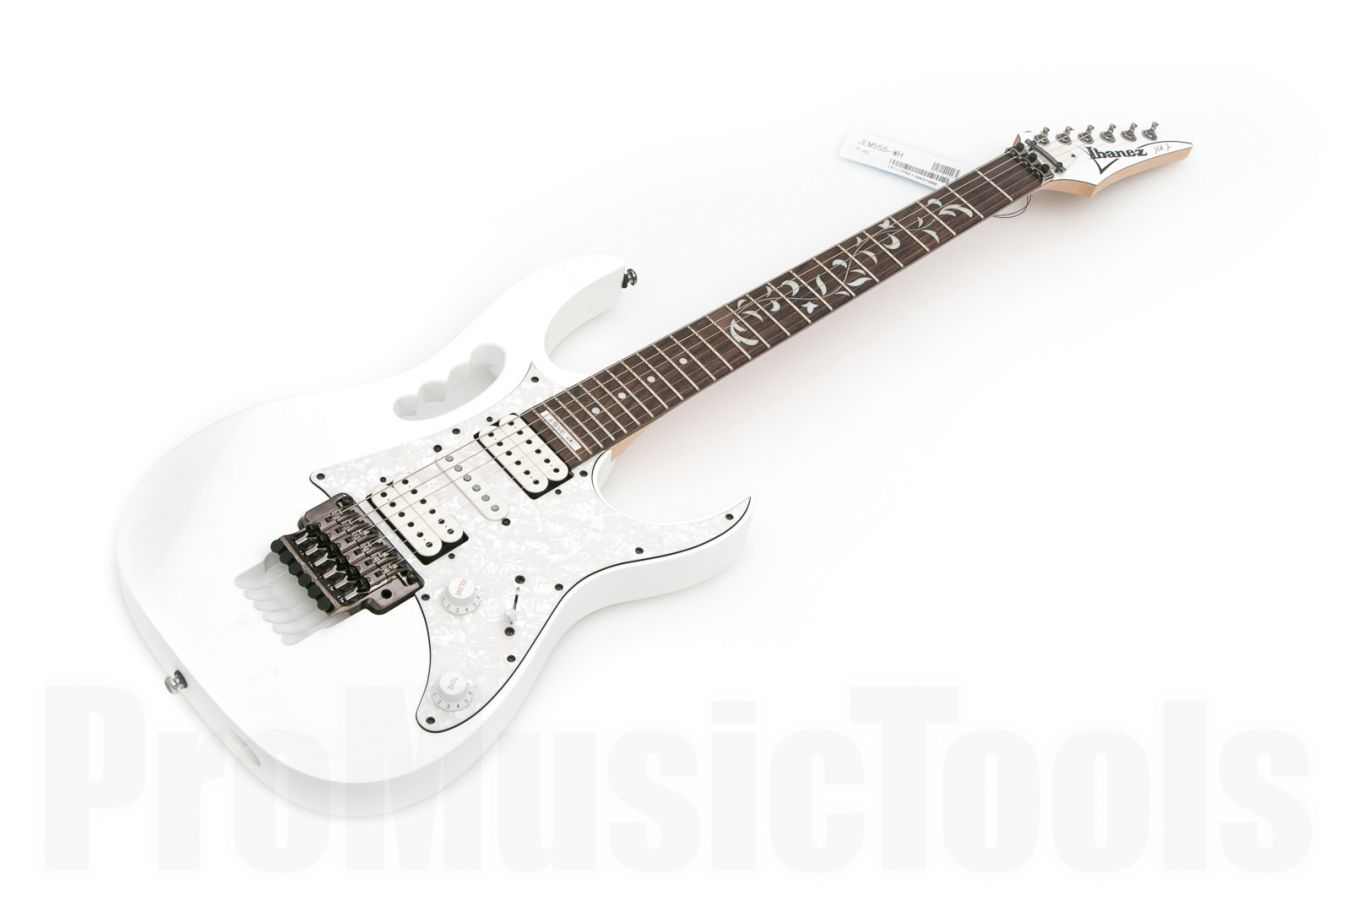 Ibanez JEM555 WH - White - Steve Vai Signature - b-stock (1x opened box)